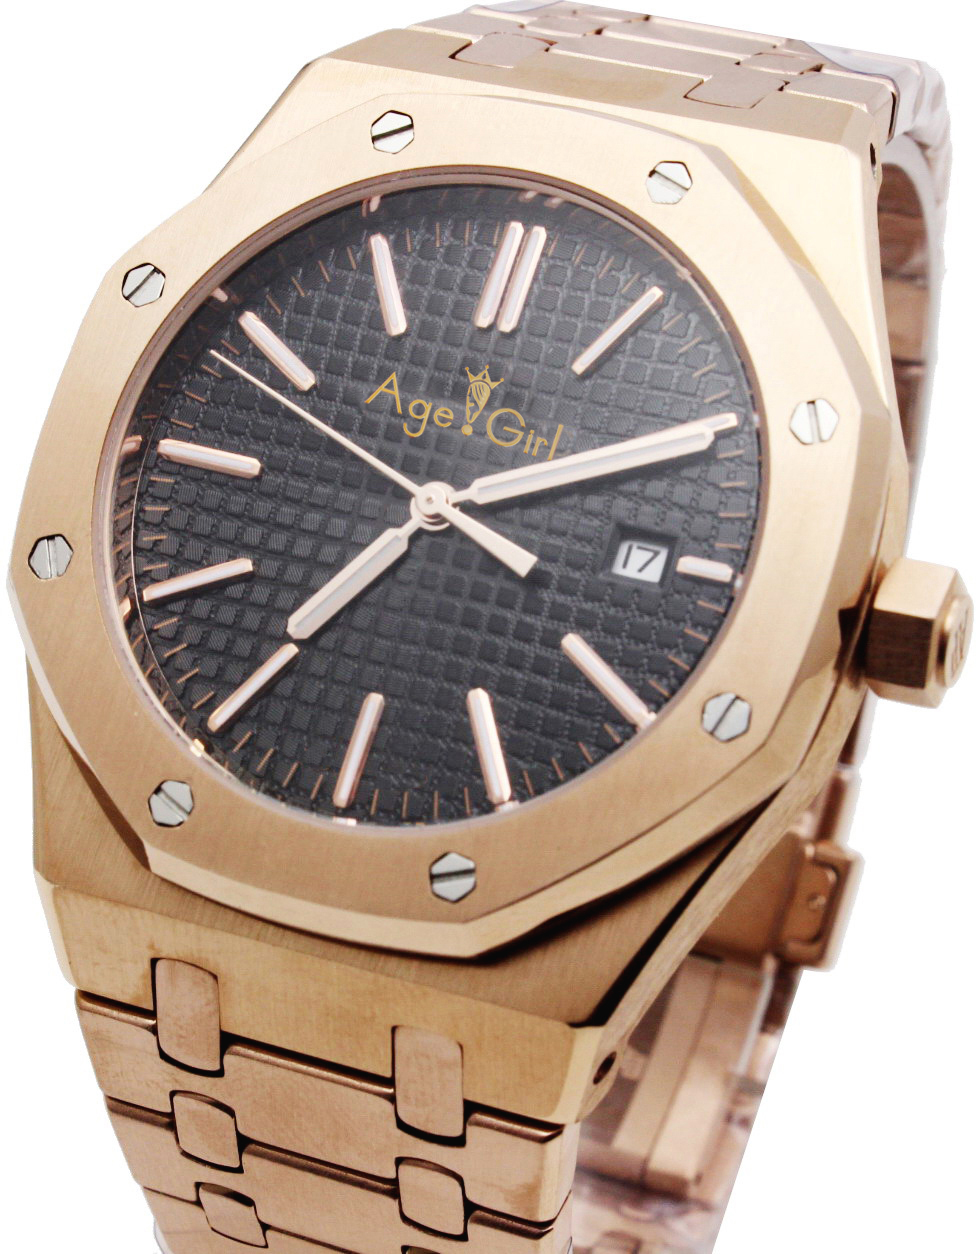 Luxury Brand New Men Watch Stainless Steel Rose Gold Silver Black Blue Automatic Mechanical Sapphire Glass Back See Through AAA+Luxury Brand New Men Watch Stainless Steel Rose Gold Silver Black Blue Automatic Mechanical Sapphire Glass Back See Through AAA+